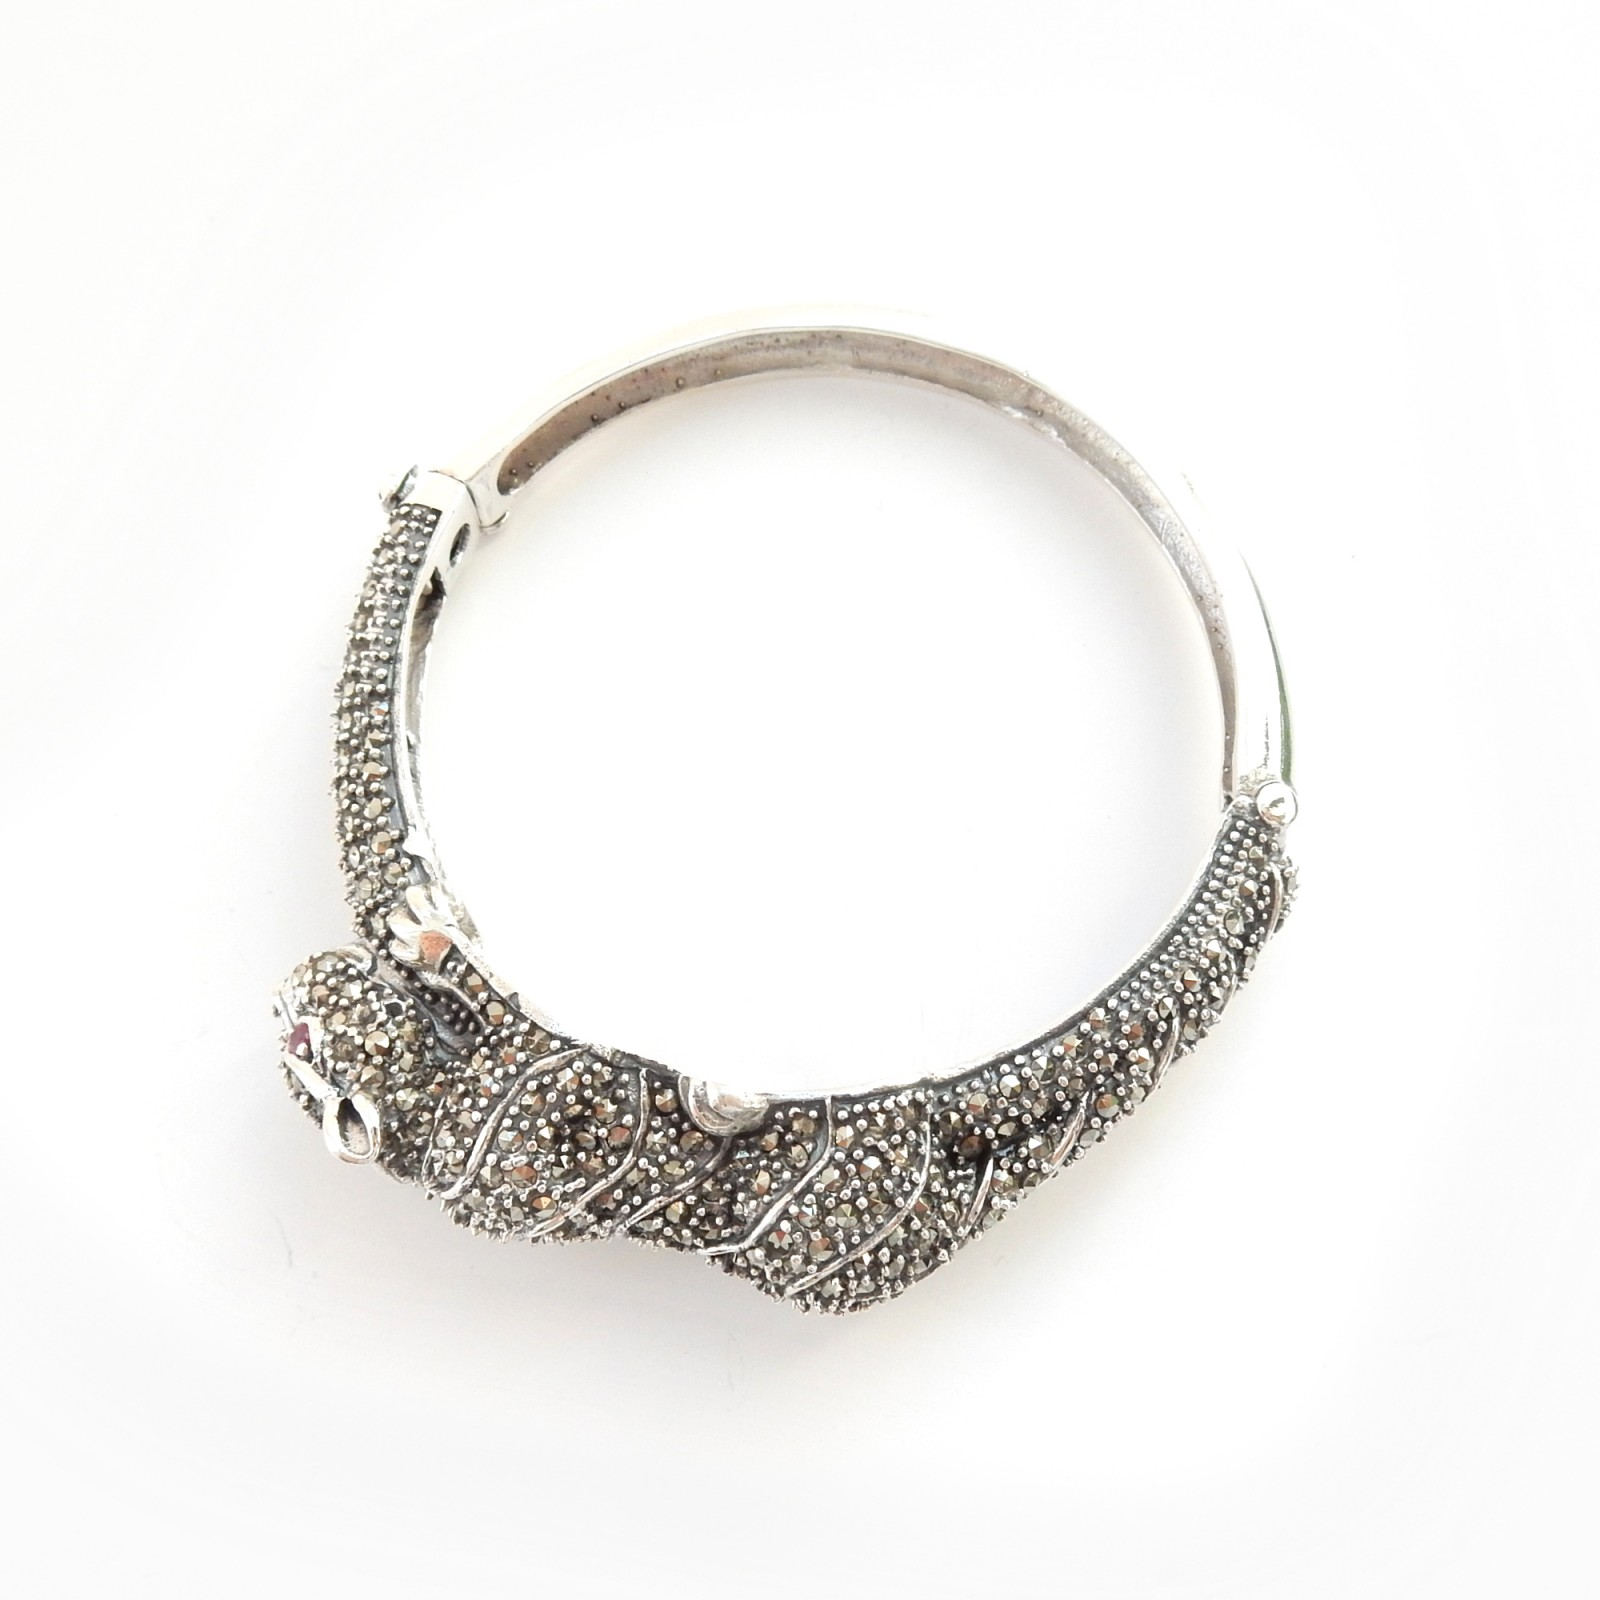 Photo of Marcasite Wild Cat Panthere Bracelet Bangle Cuff Solid Silver Fine Jewelery